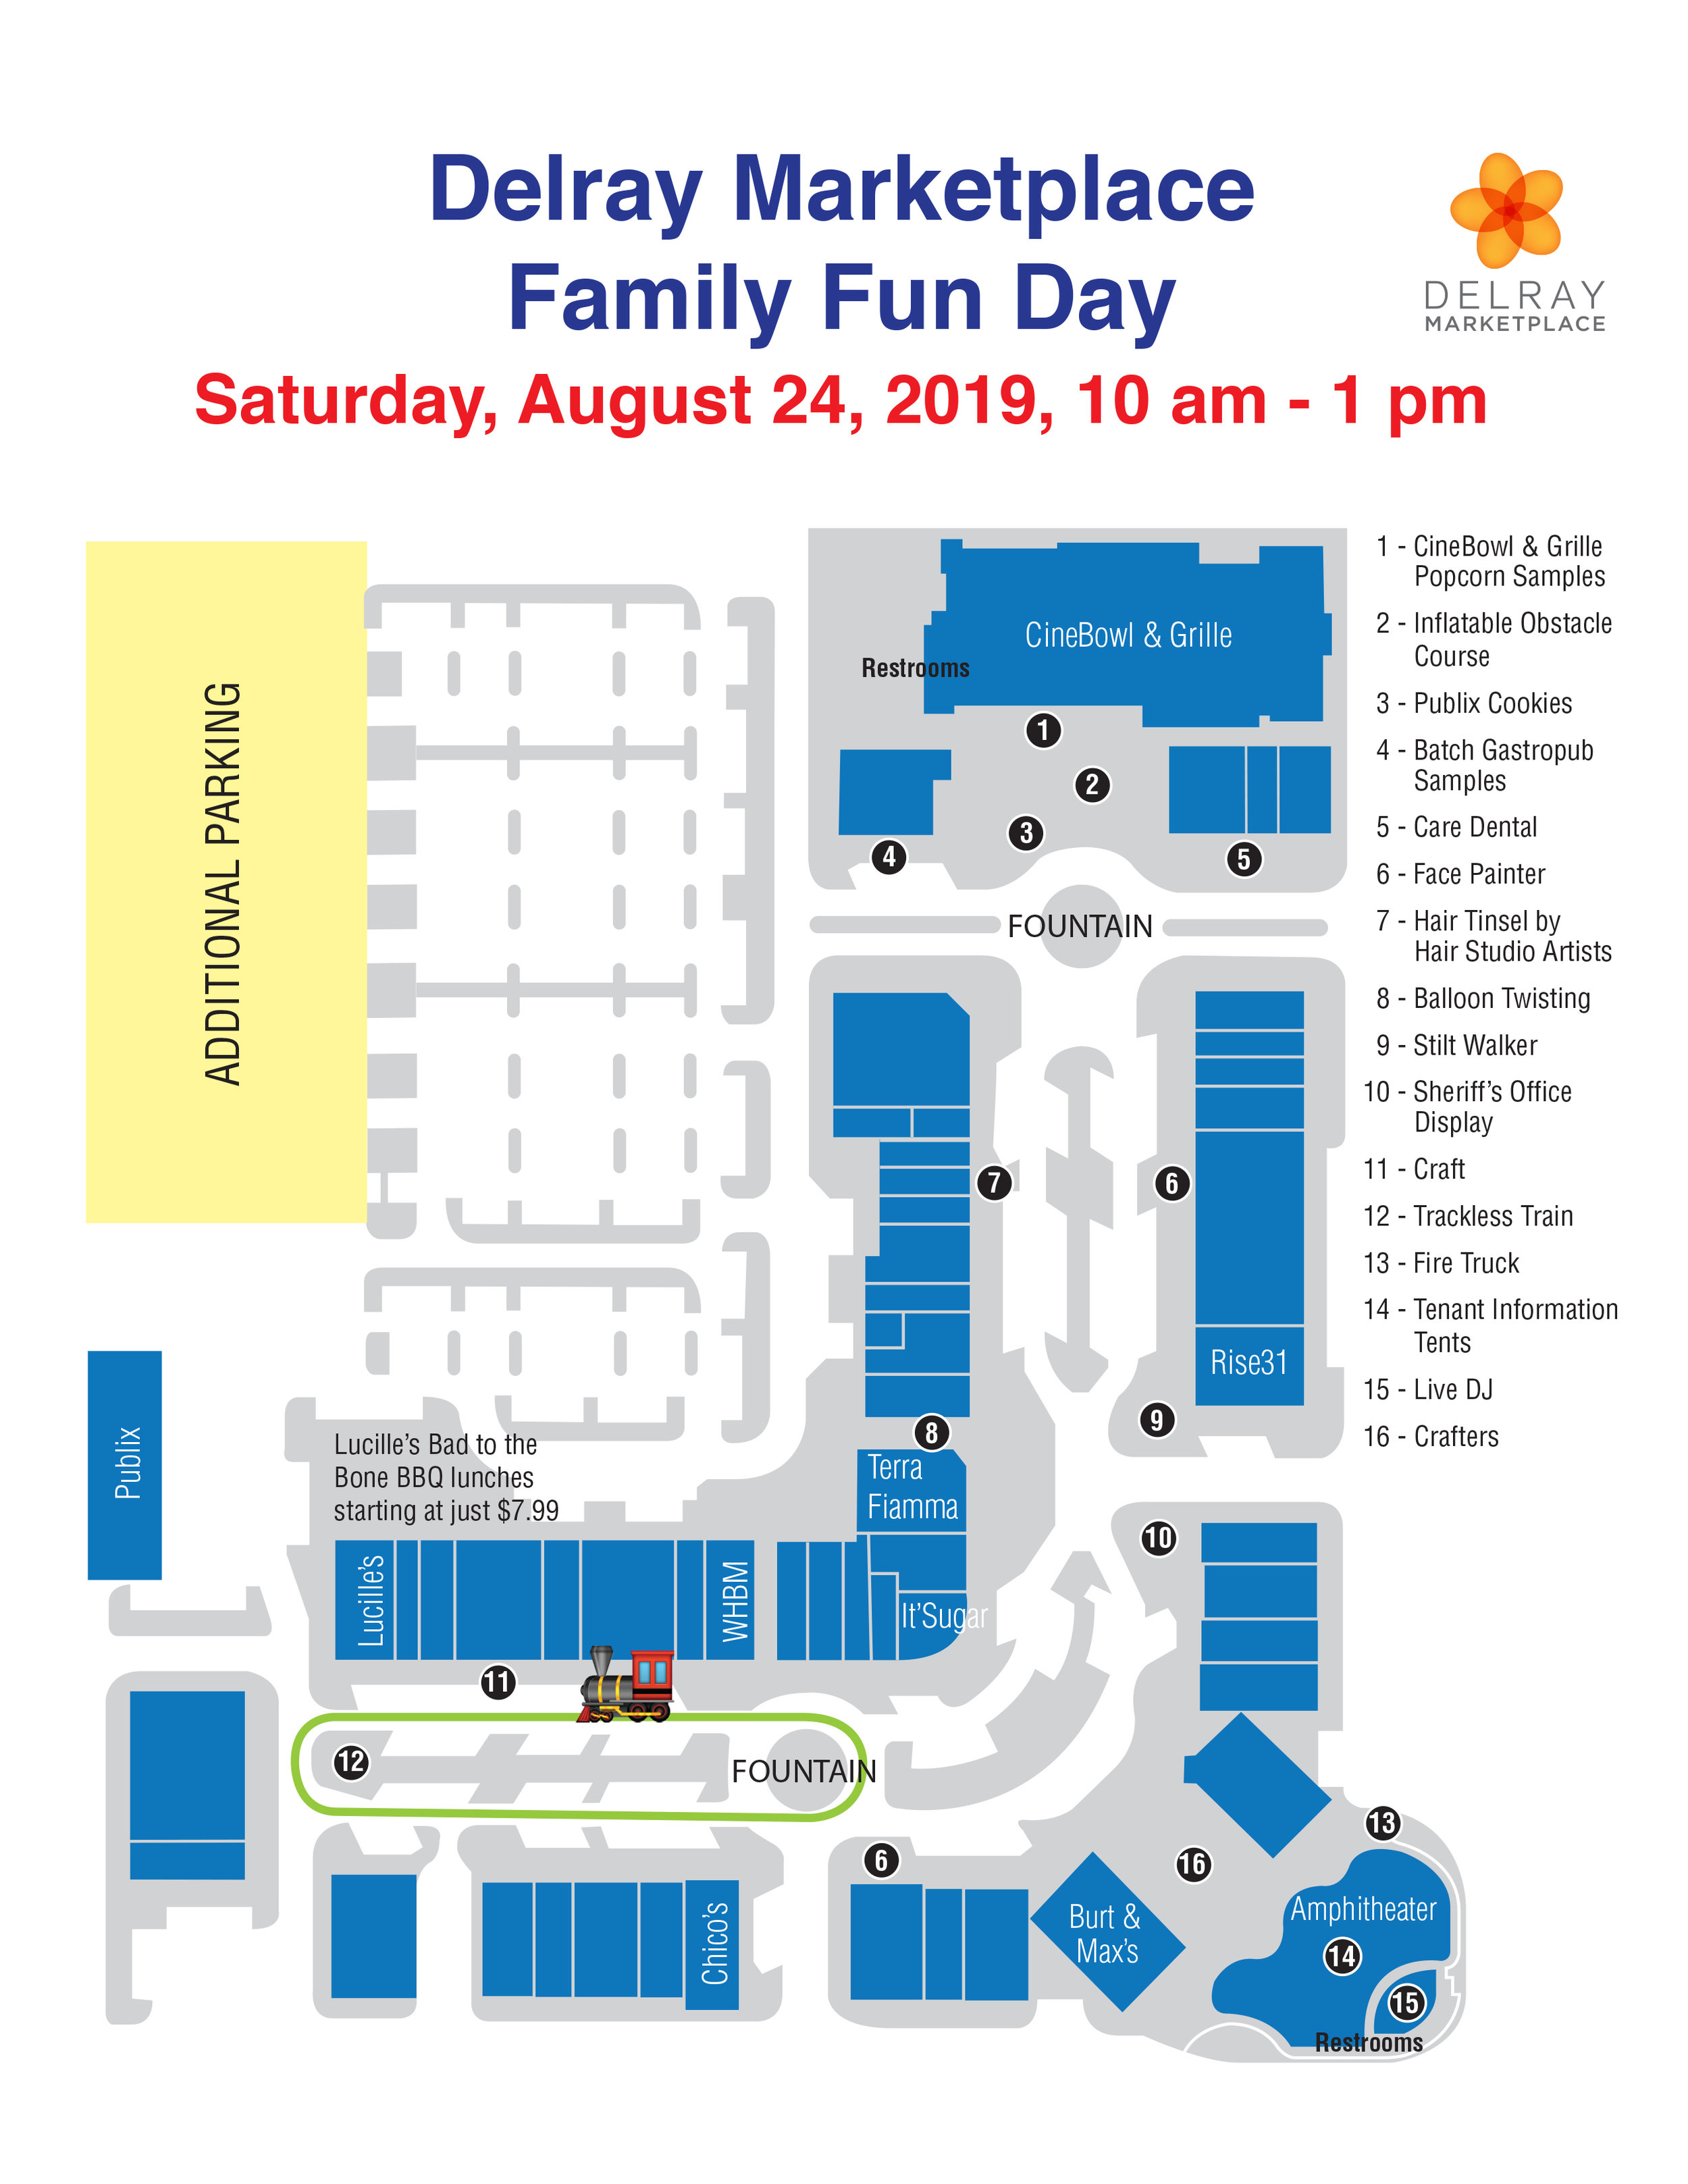 Delray Marketplace Family Fun Day 2019 Map.jpg